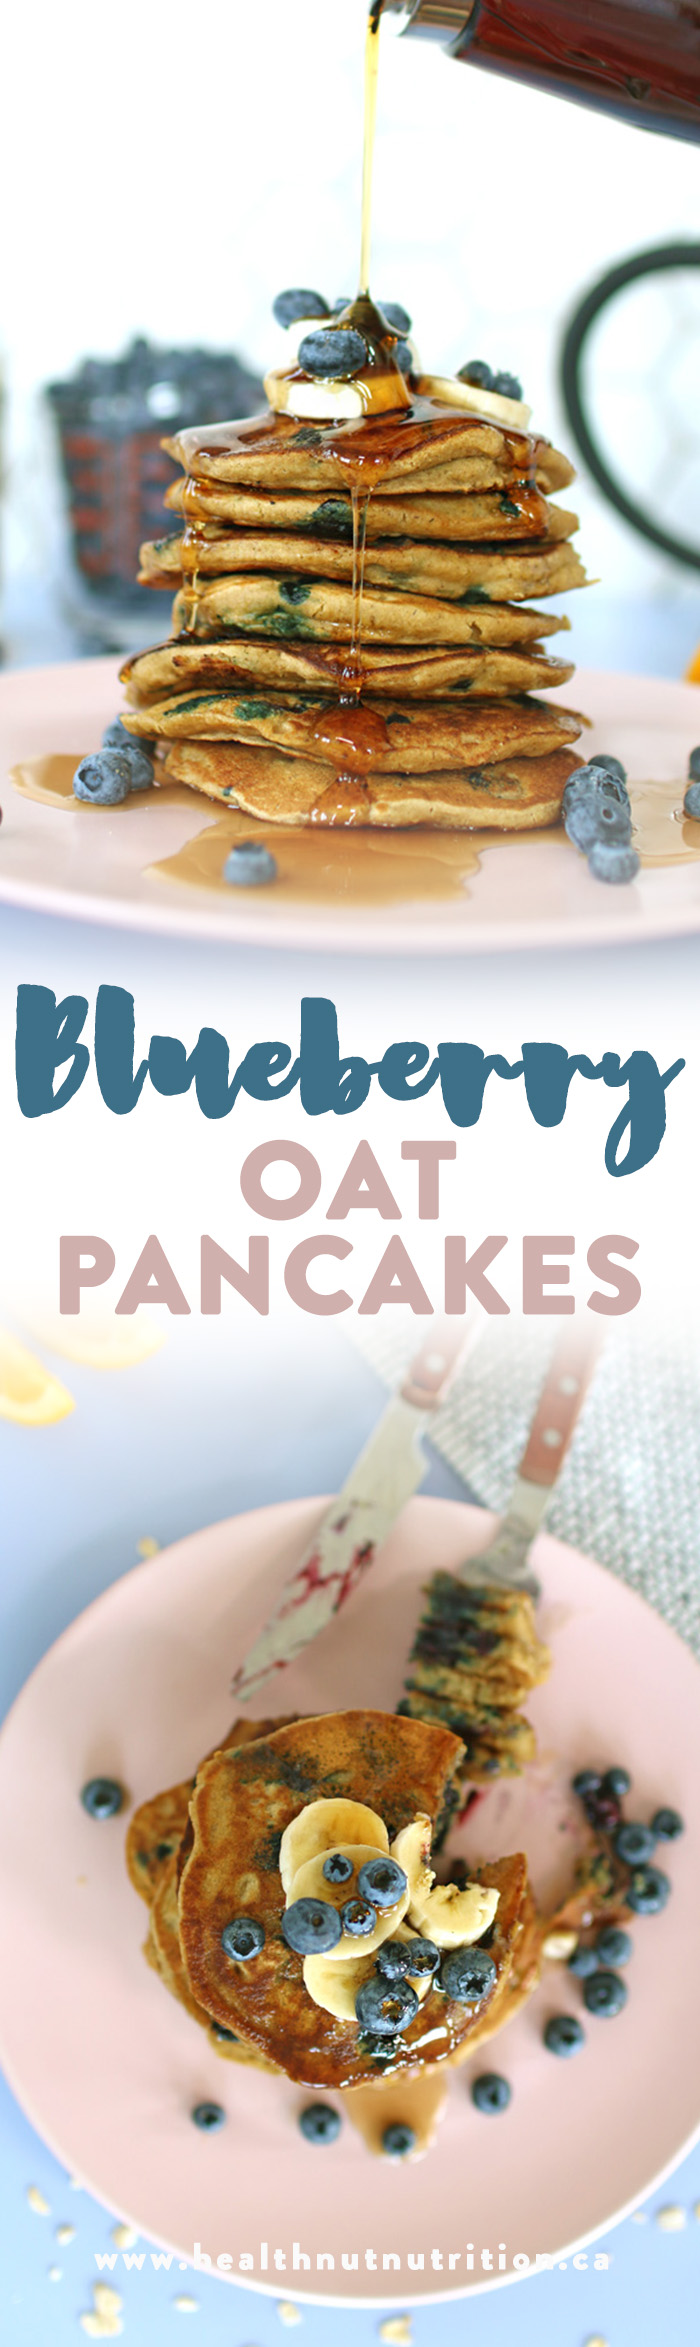 These Blueberry Oat Pancakes are delicious, moist, and fluffy and makes you feel like you're having cake for breakfast. Click through for the recipe!